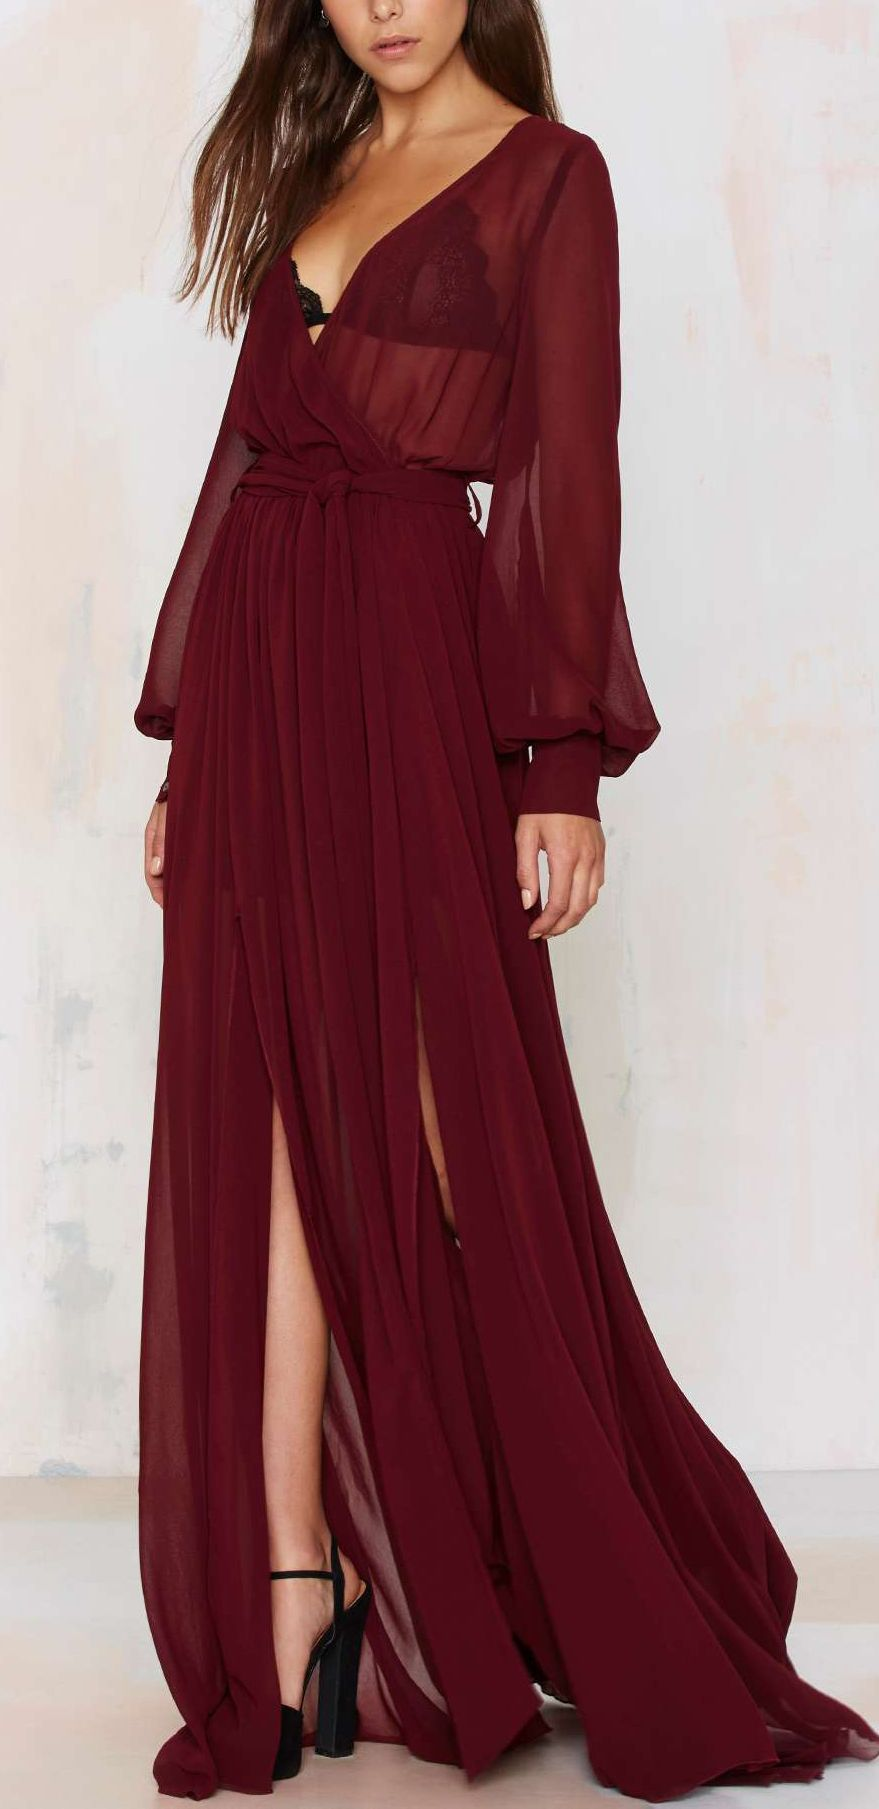 Burgundy gown i am the life of the evening pinterest burgundy